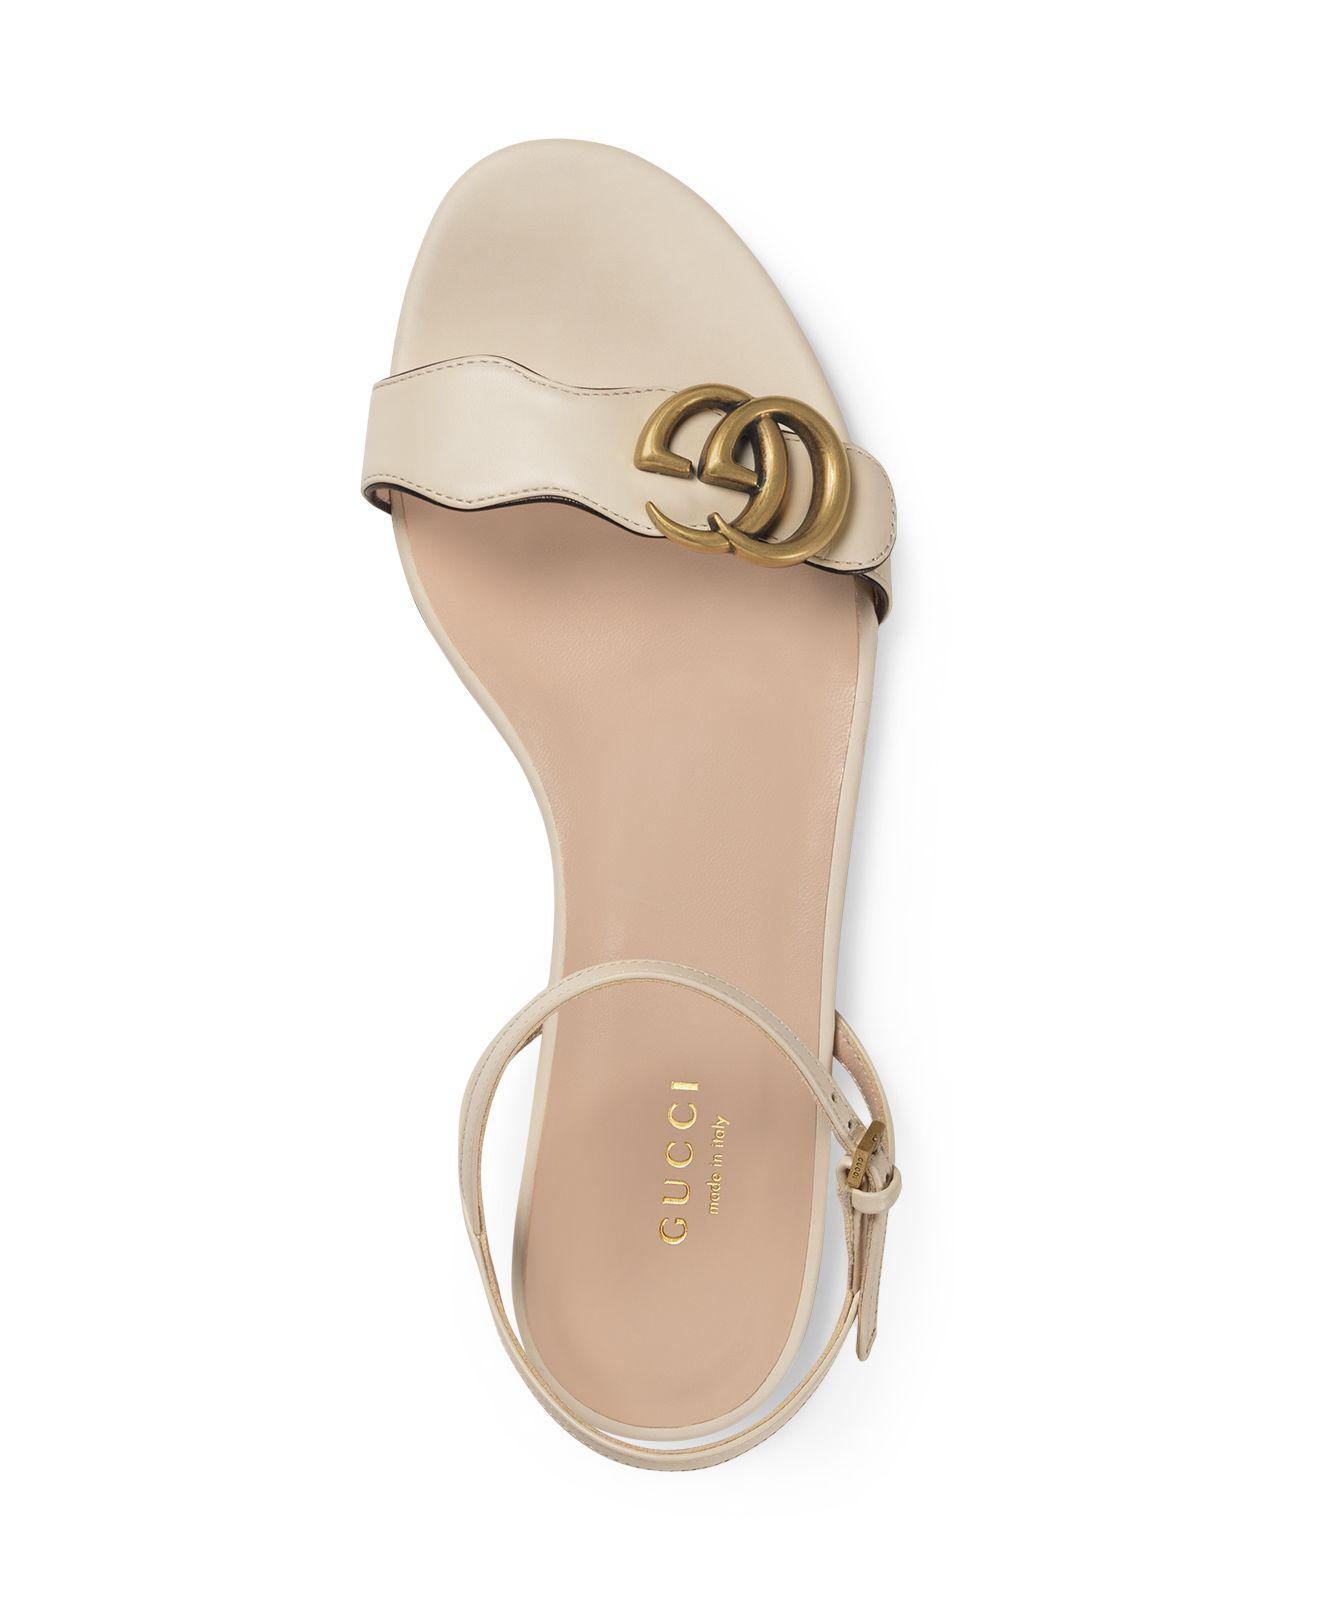 248ff2c8c35d Lyst - Gucci Women s Marmont Leather Double G Sandals in White